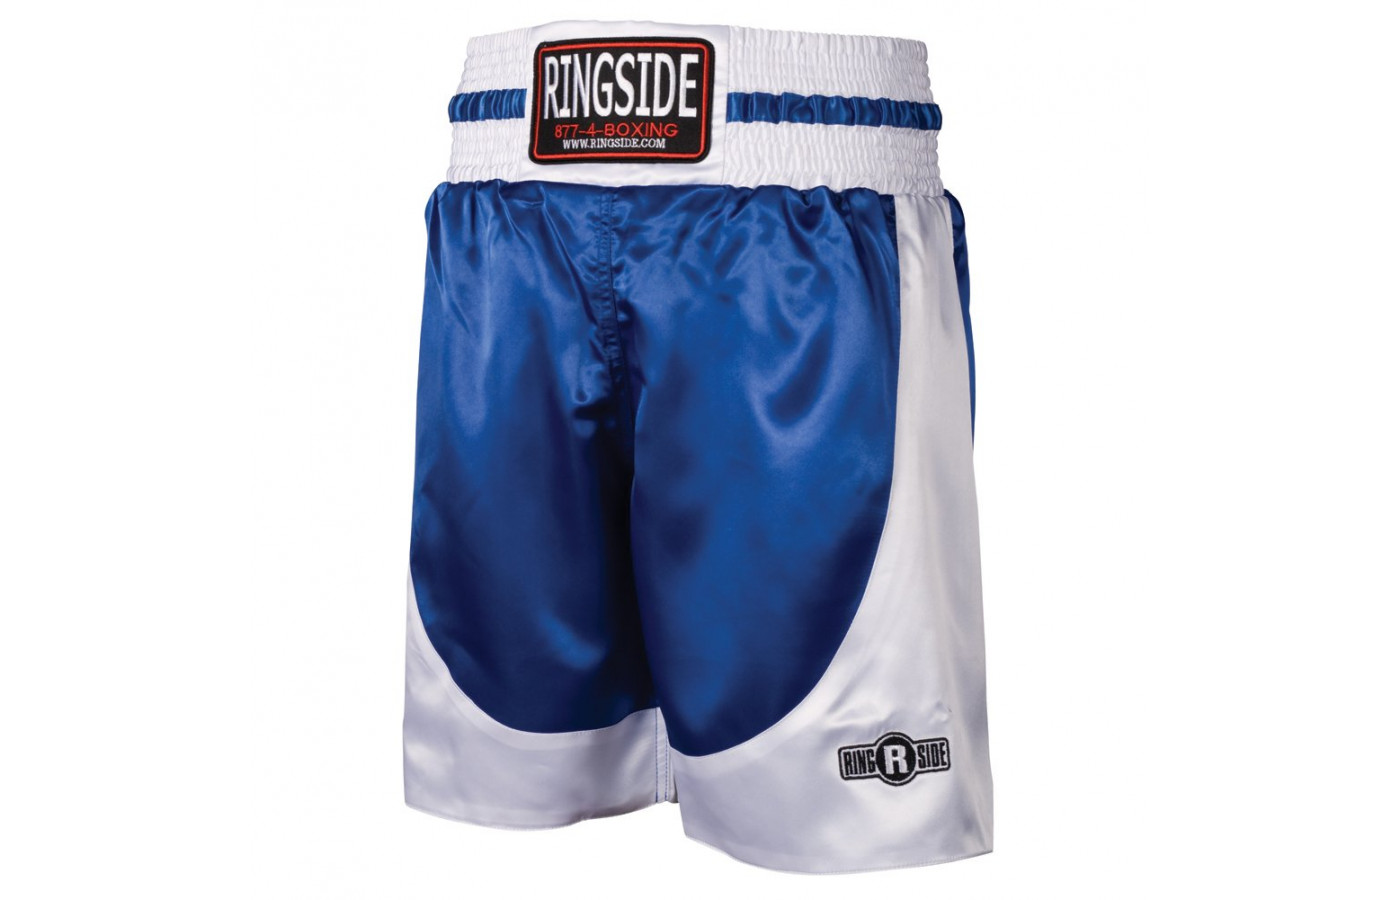 ringside trunks blue and white